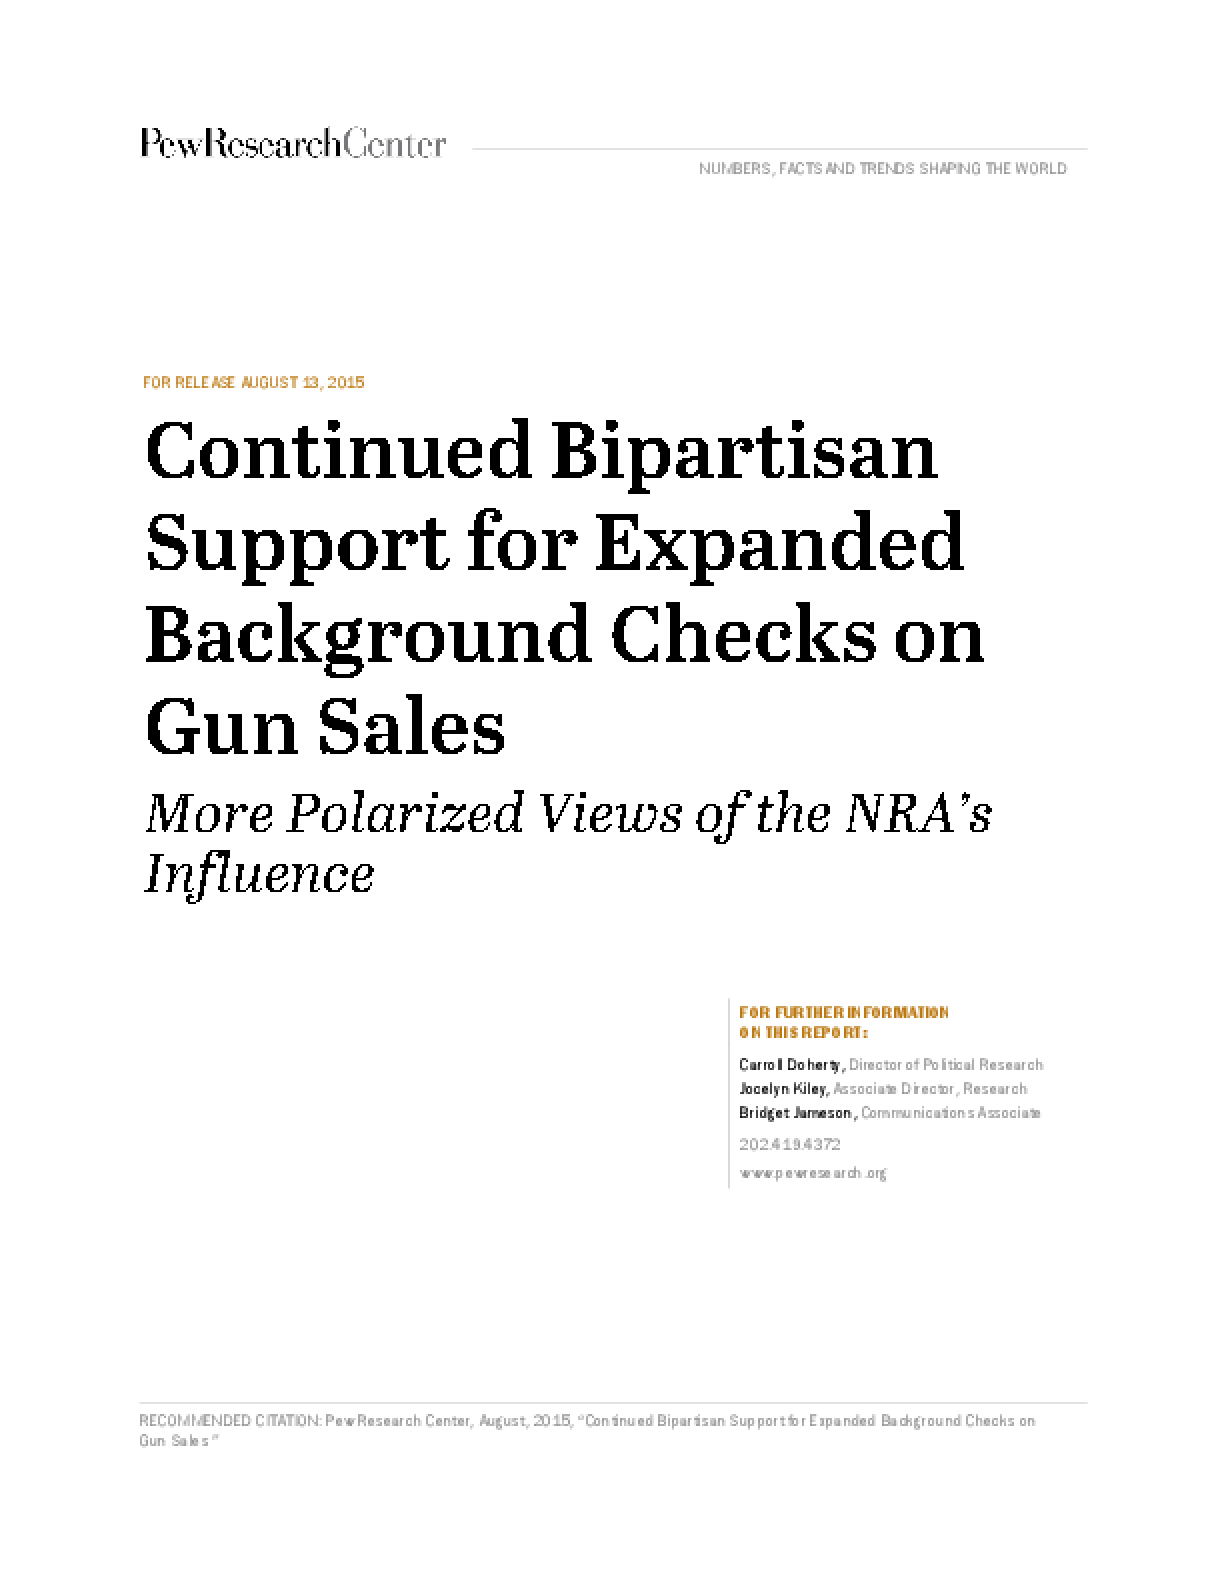 Continued Bipartisan Support For Expanded Background Checks On Gun Sales: More Polarized Views of the NRA's Influence